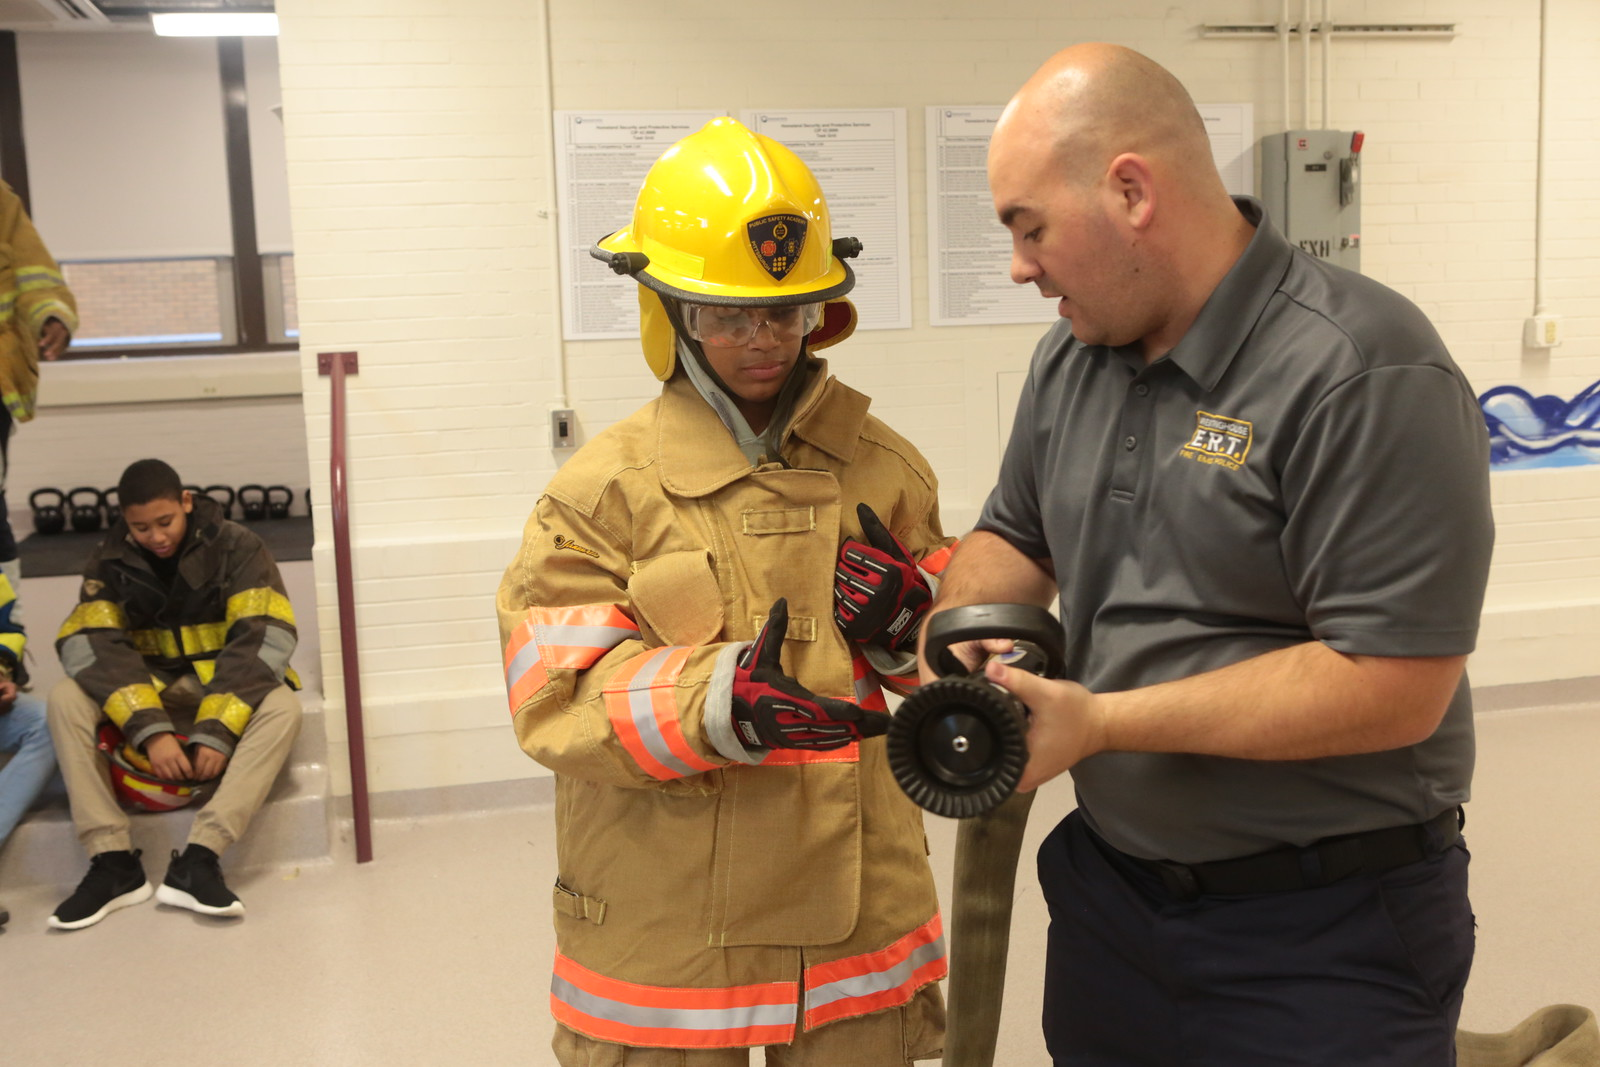 Matthew S. Patrick, the instructor of the Emergency Response Technology program, explains to a student how to use a fire hose. (Photo by Brian Cook/PublicSource)